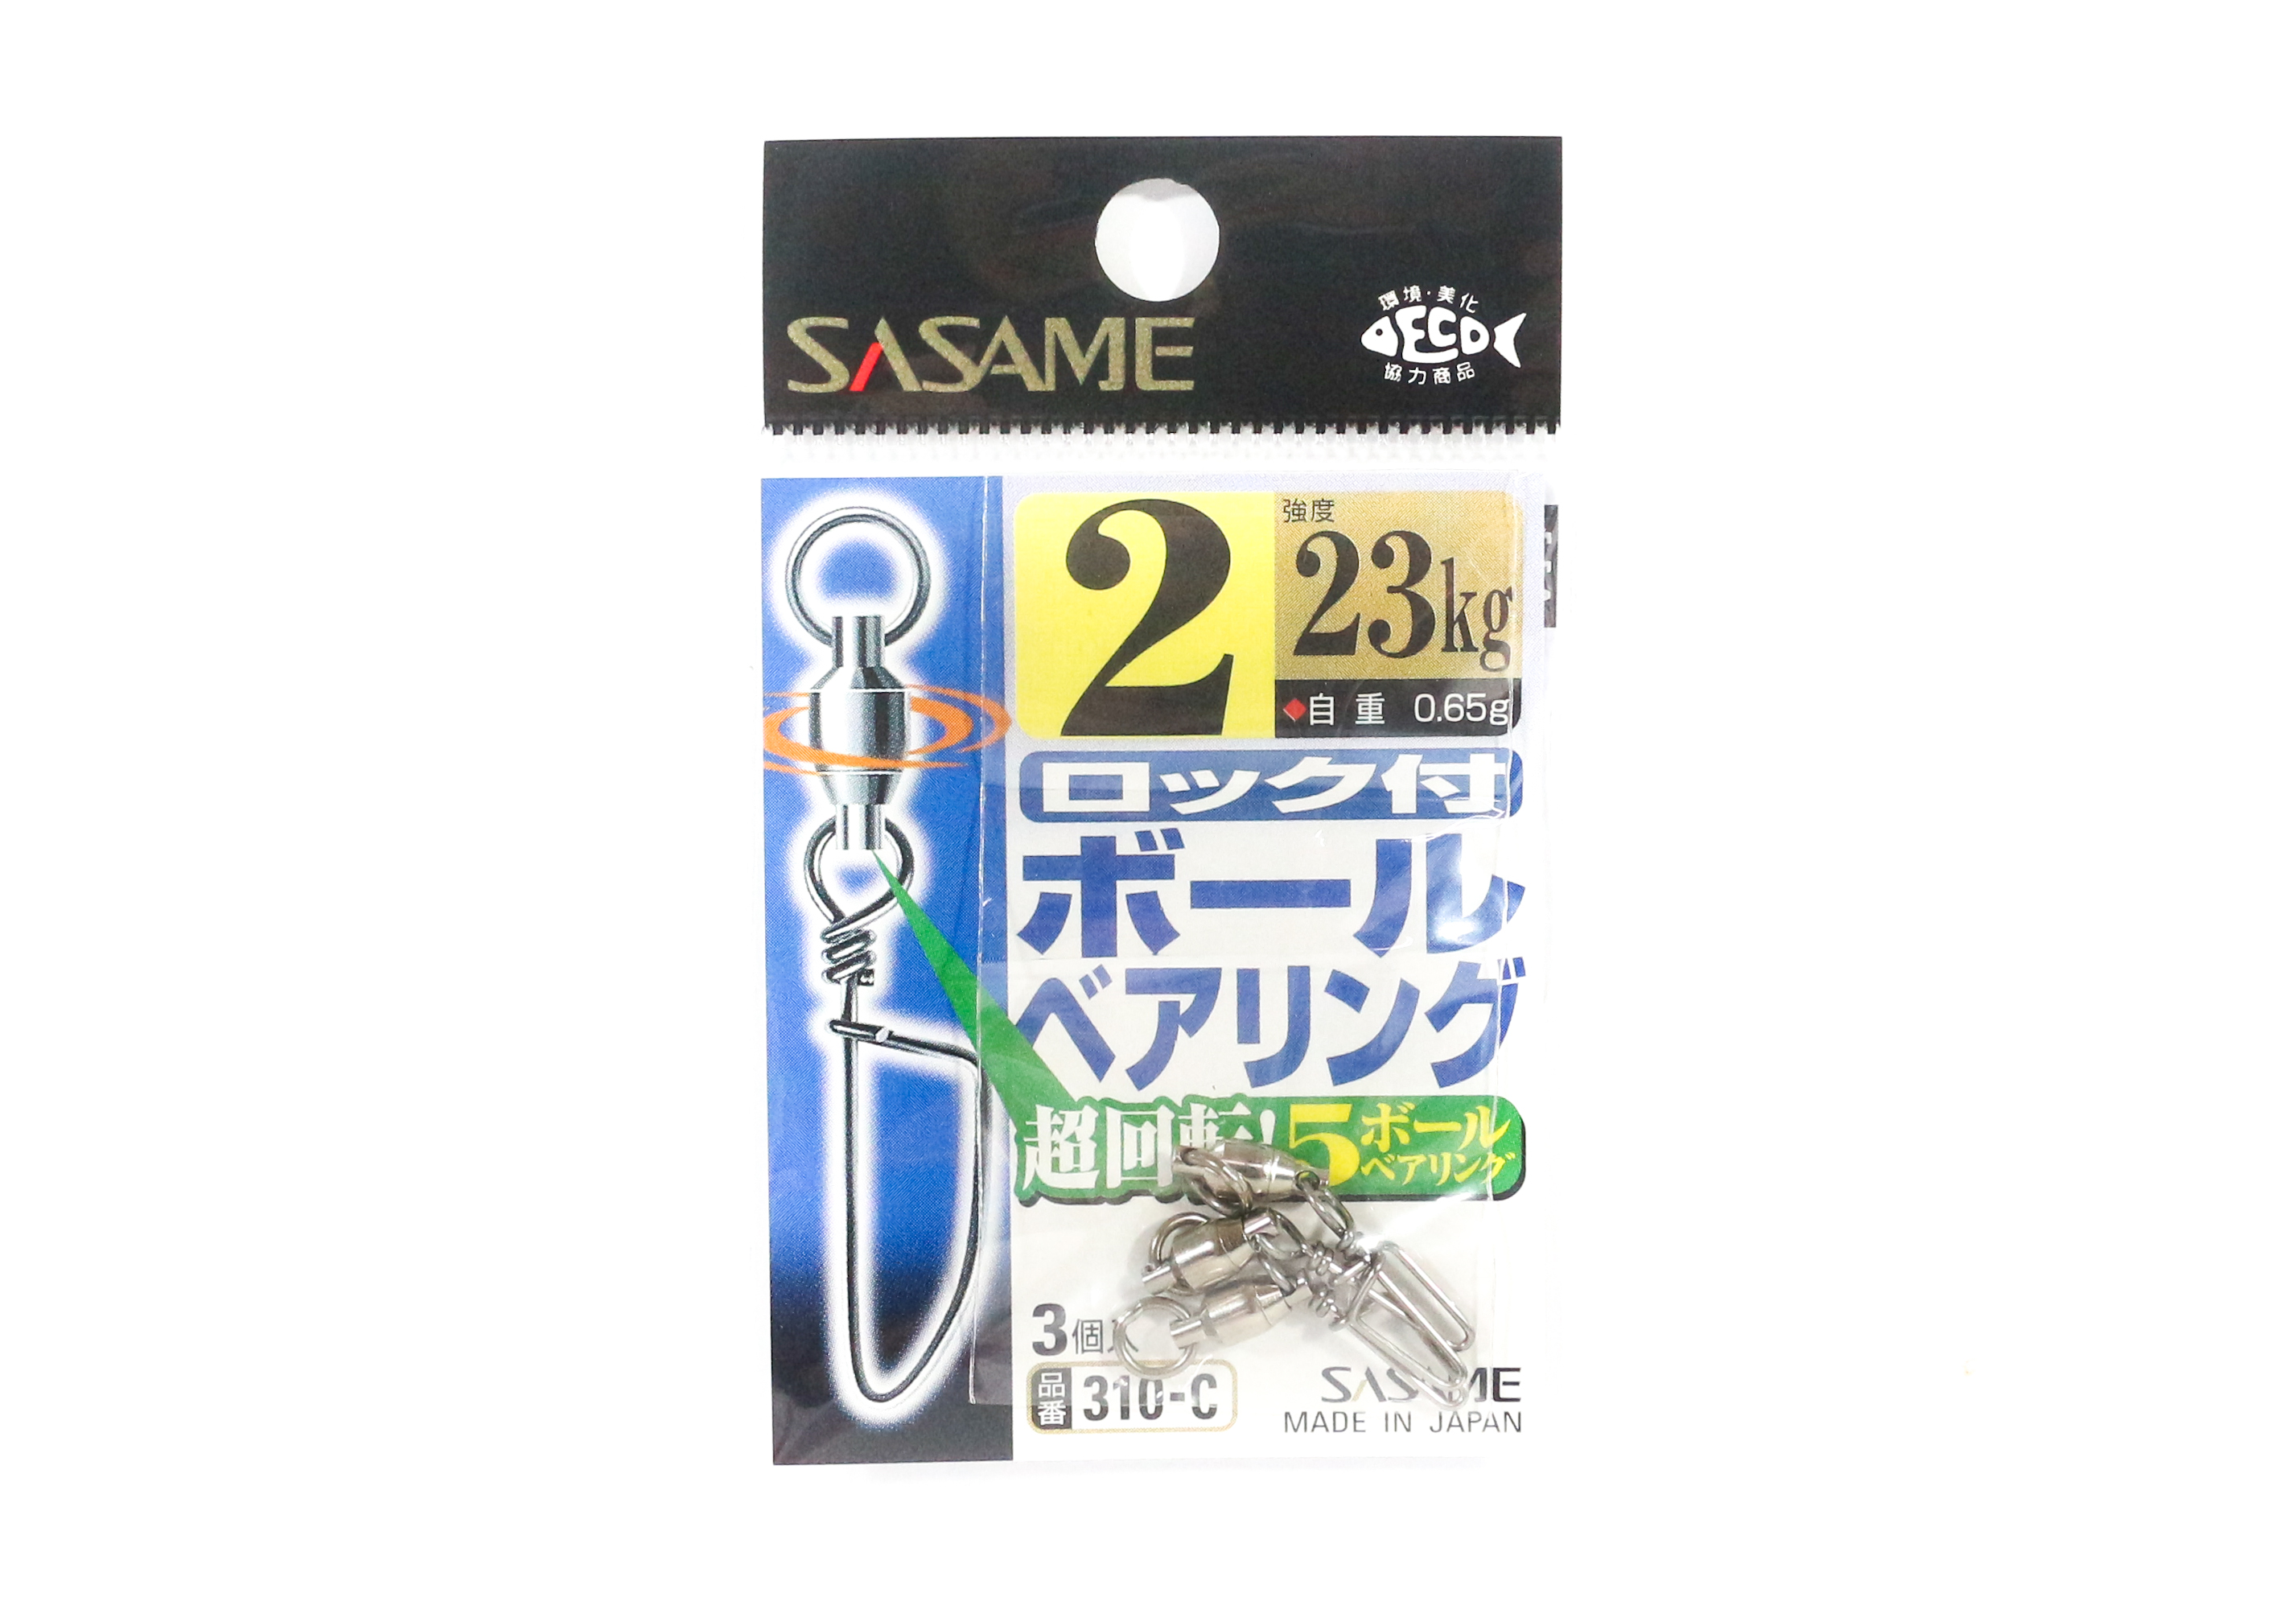 Sasame 310-C Ball Bearing Snap Swivels High Quality Size 2 (1737)